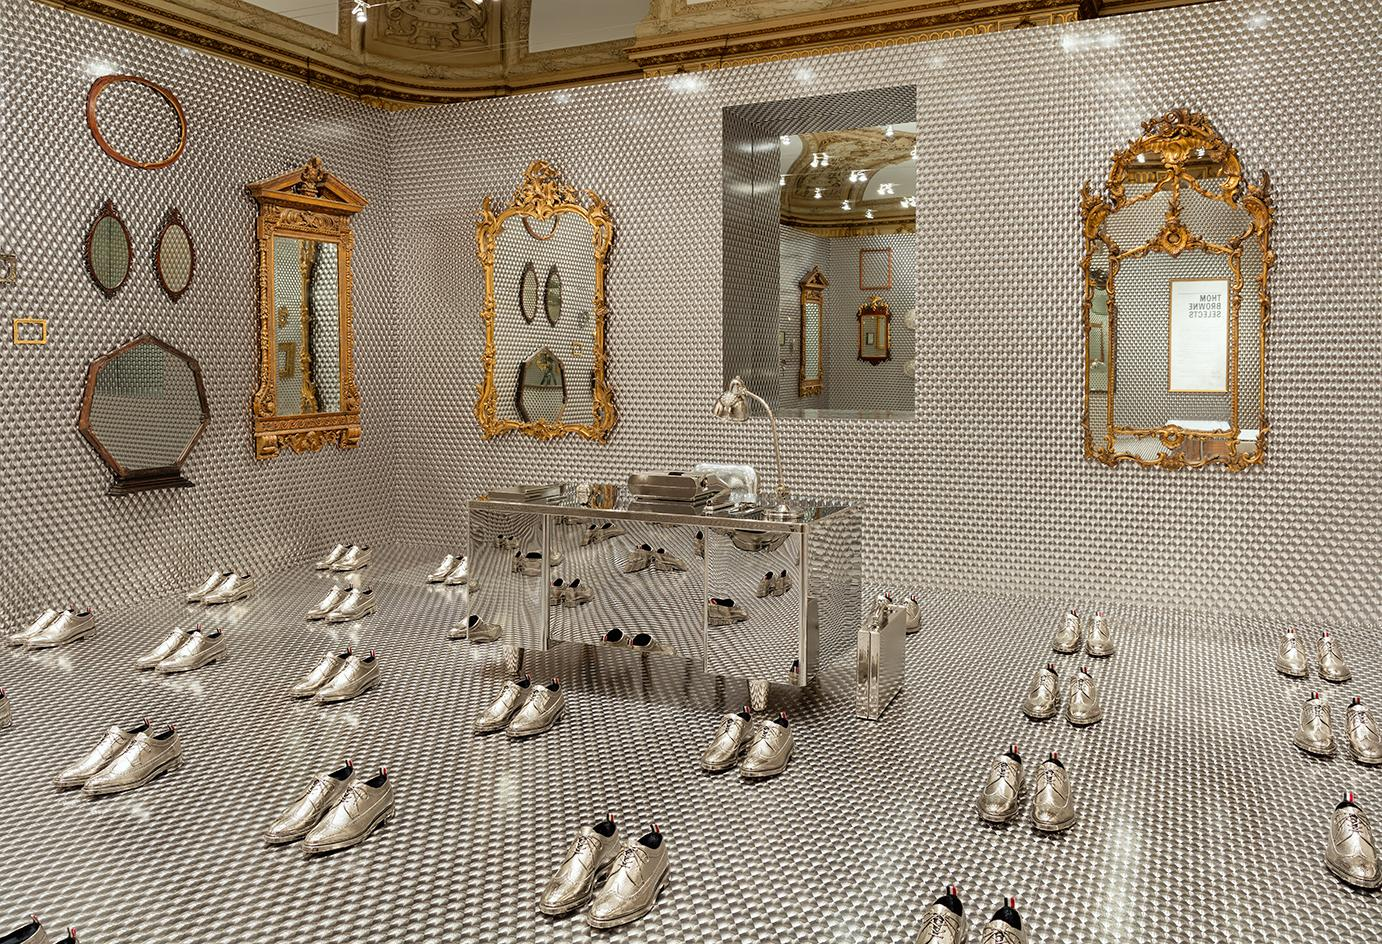 Hall of mirrors: Thom Browne curates a reflective world for the Cooper Hewitt